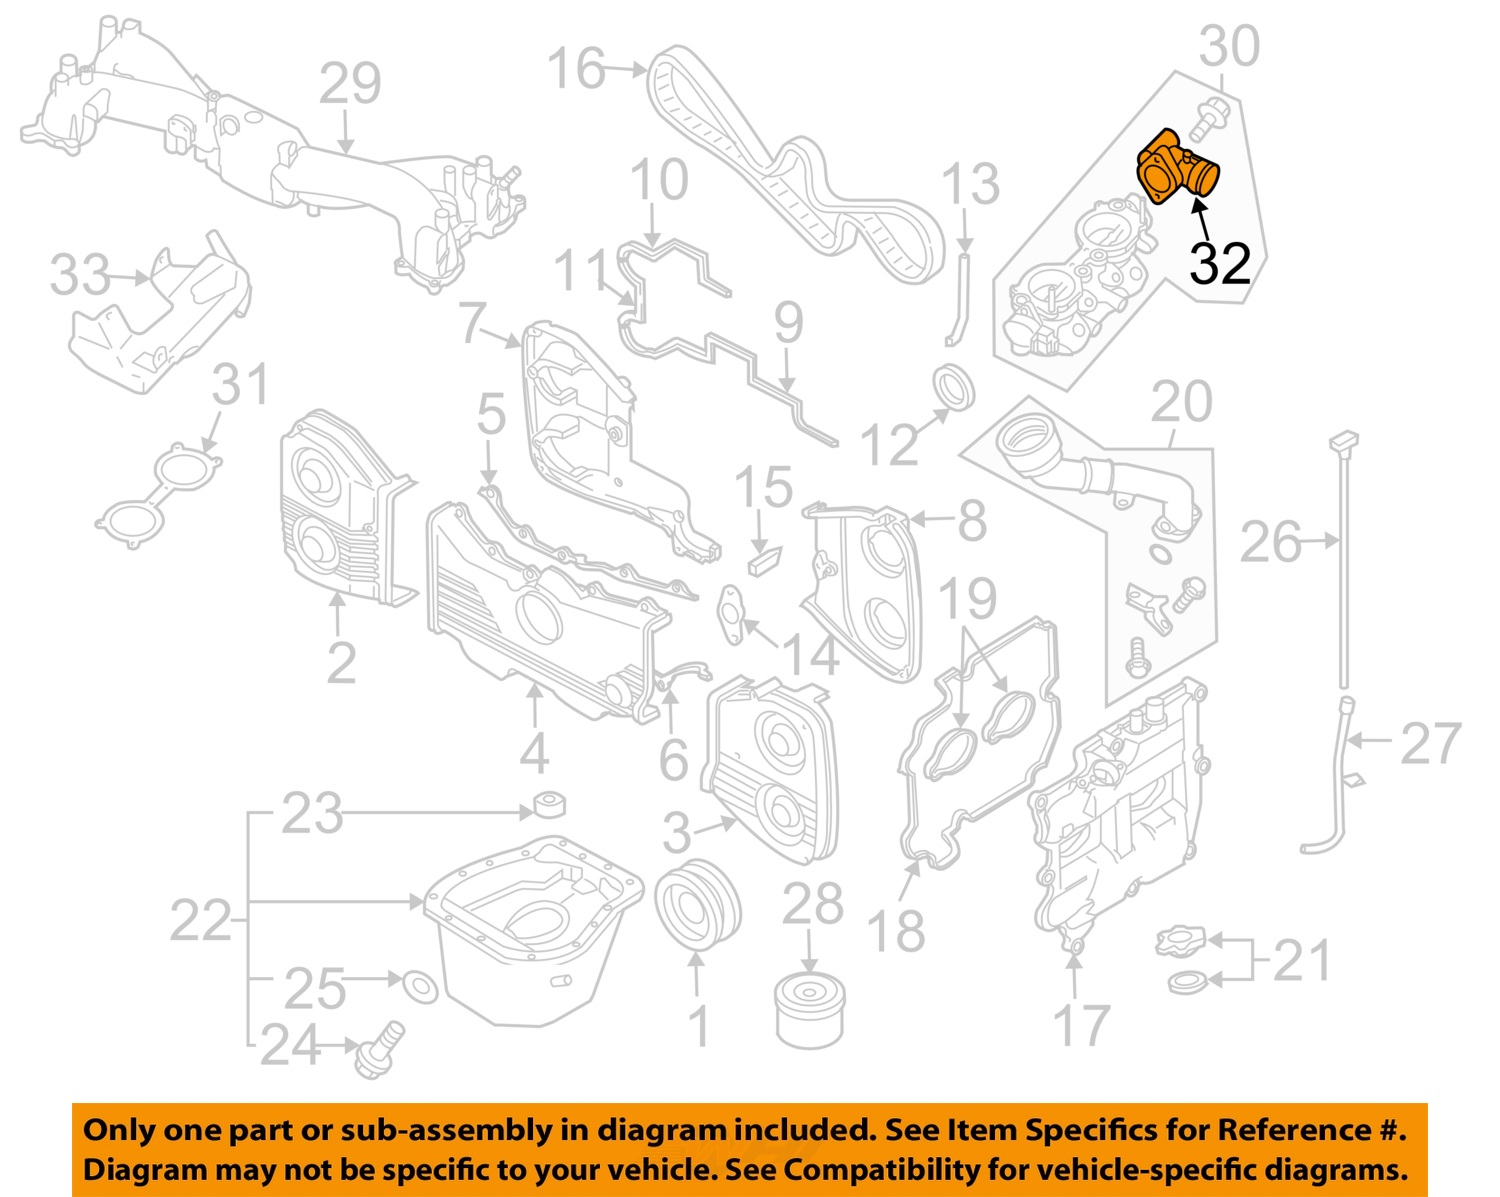 Subaru Oem 04 08 Forester Engine Parts Motor Right